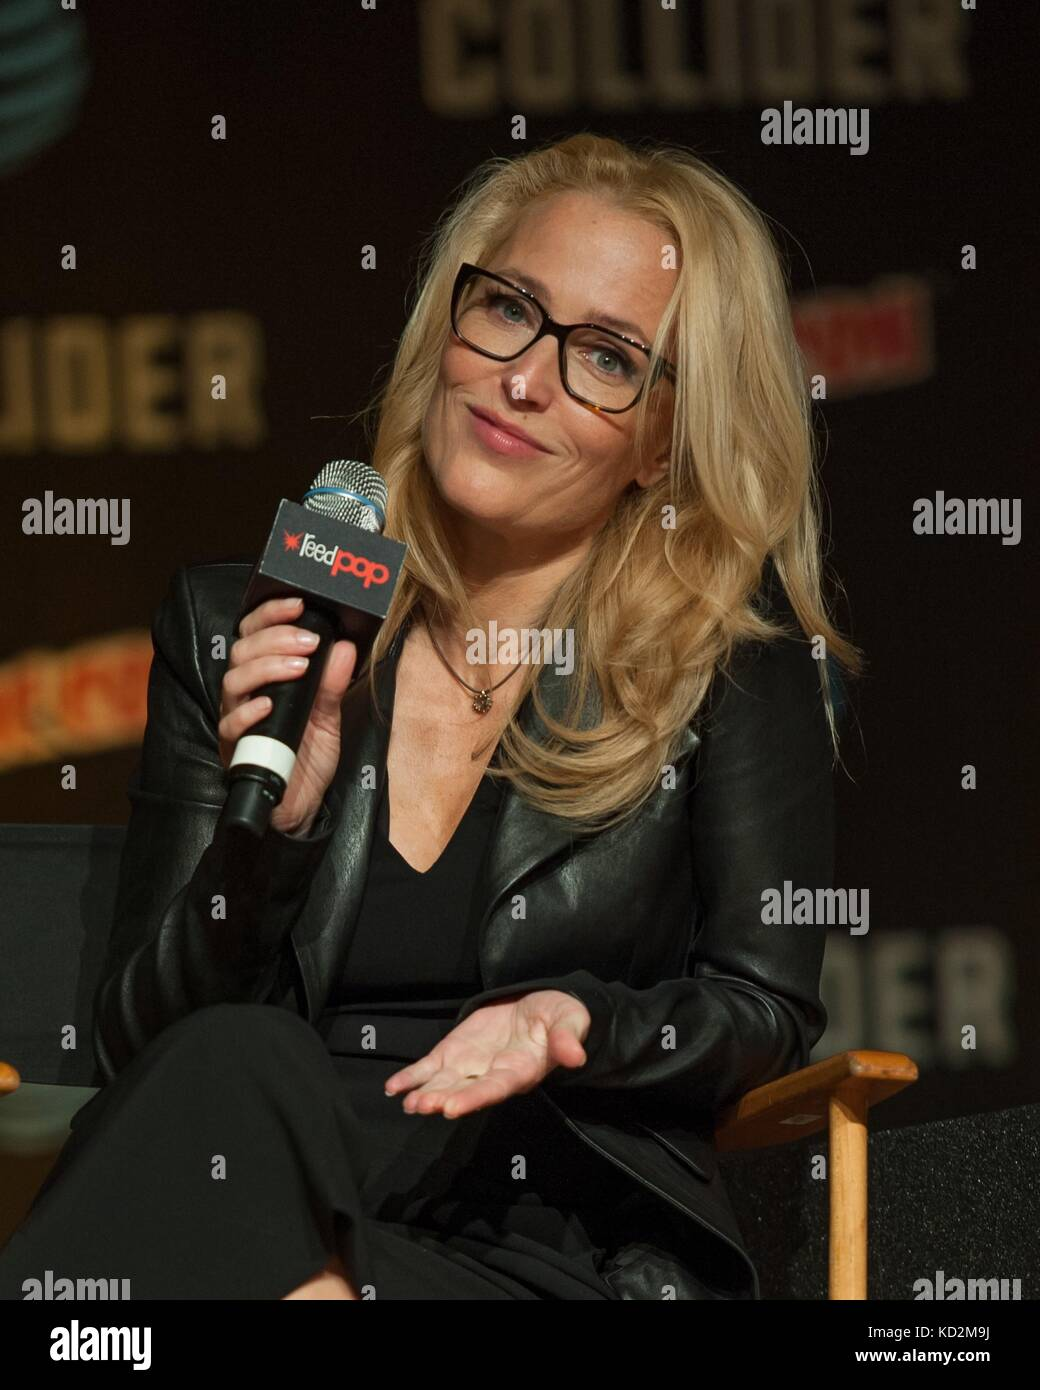 New York, NY, USA. 8th Oct, 2017. Gillian Anderson, attending The X Files event in attendance for New York Comic - Stock Image